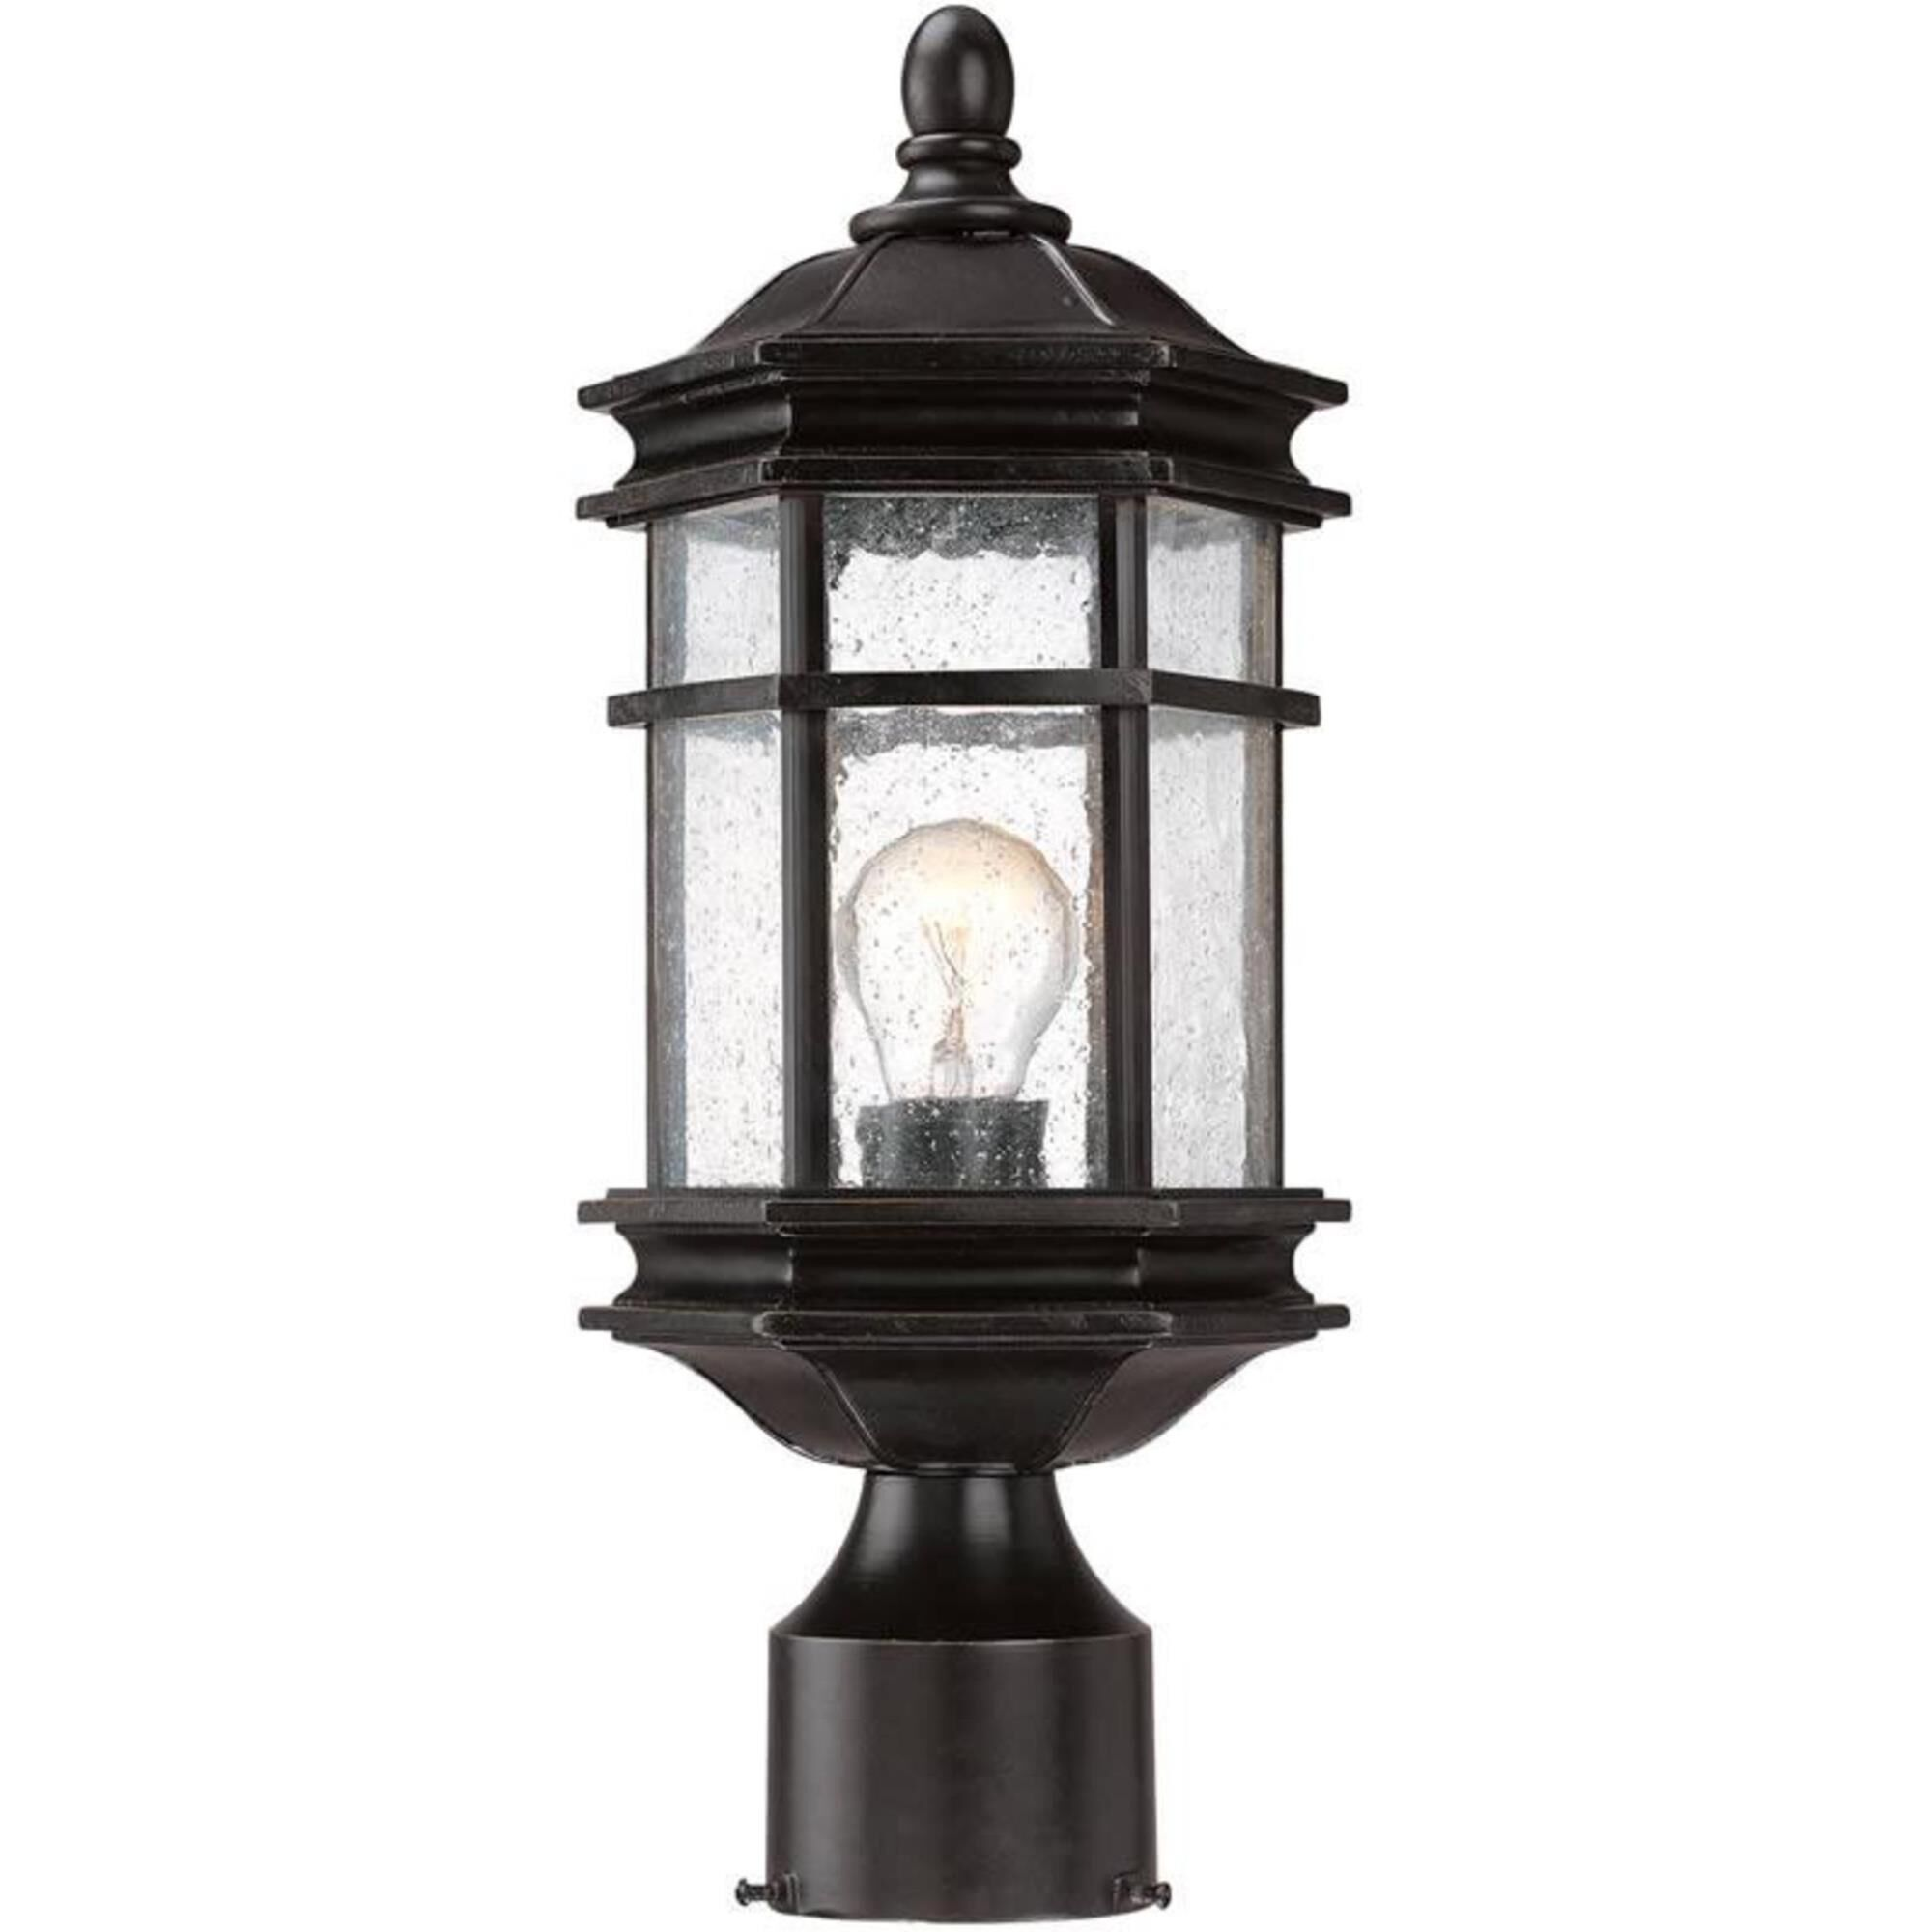 Dolan Designs Barlow 15 Inch Tall 1 Light Outdoor Post Lamp Barlow - 9233-68 - Traditional